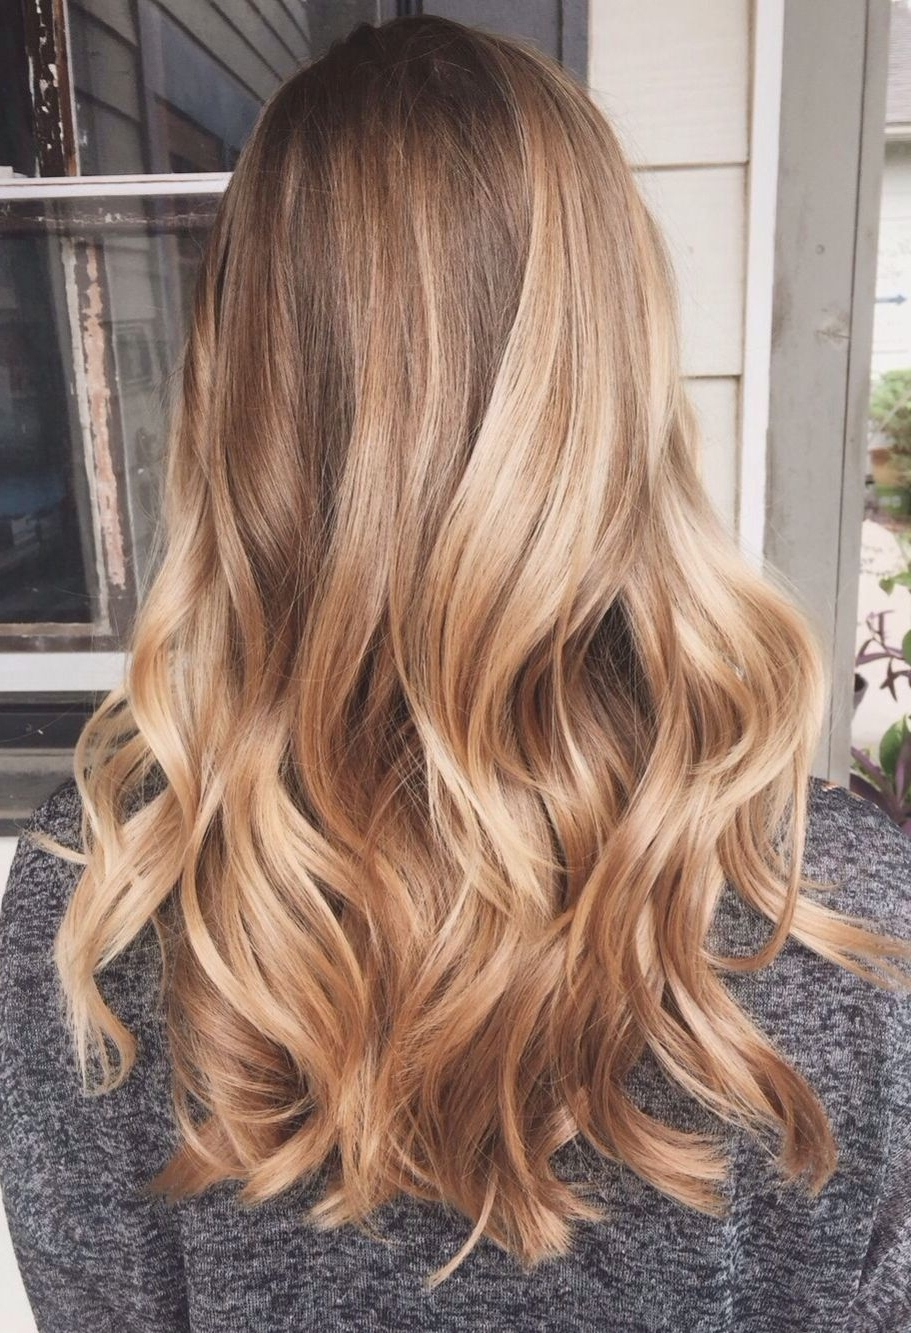 Famous Warm Blonde Curls Blonde Hairstyles Within Highlights Wavy Hair #gorgeoushair (View 10 of 20)